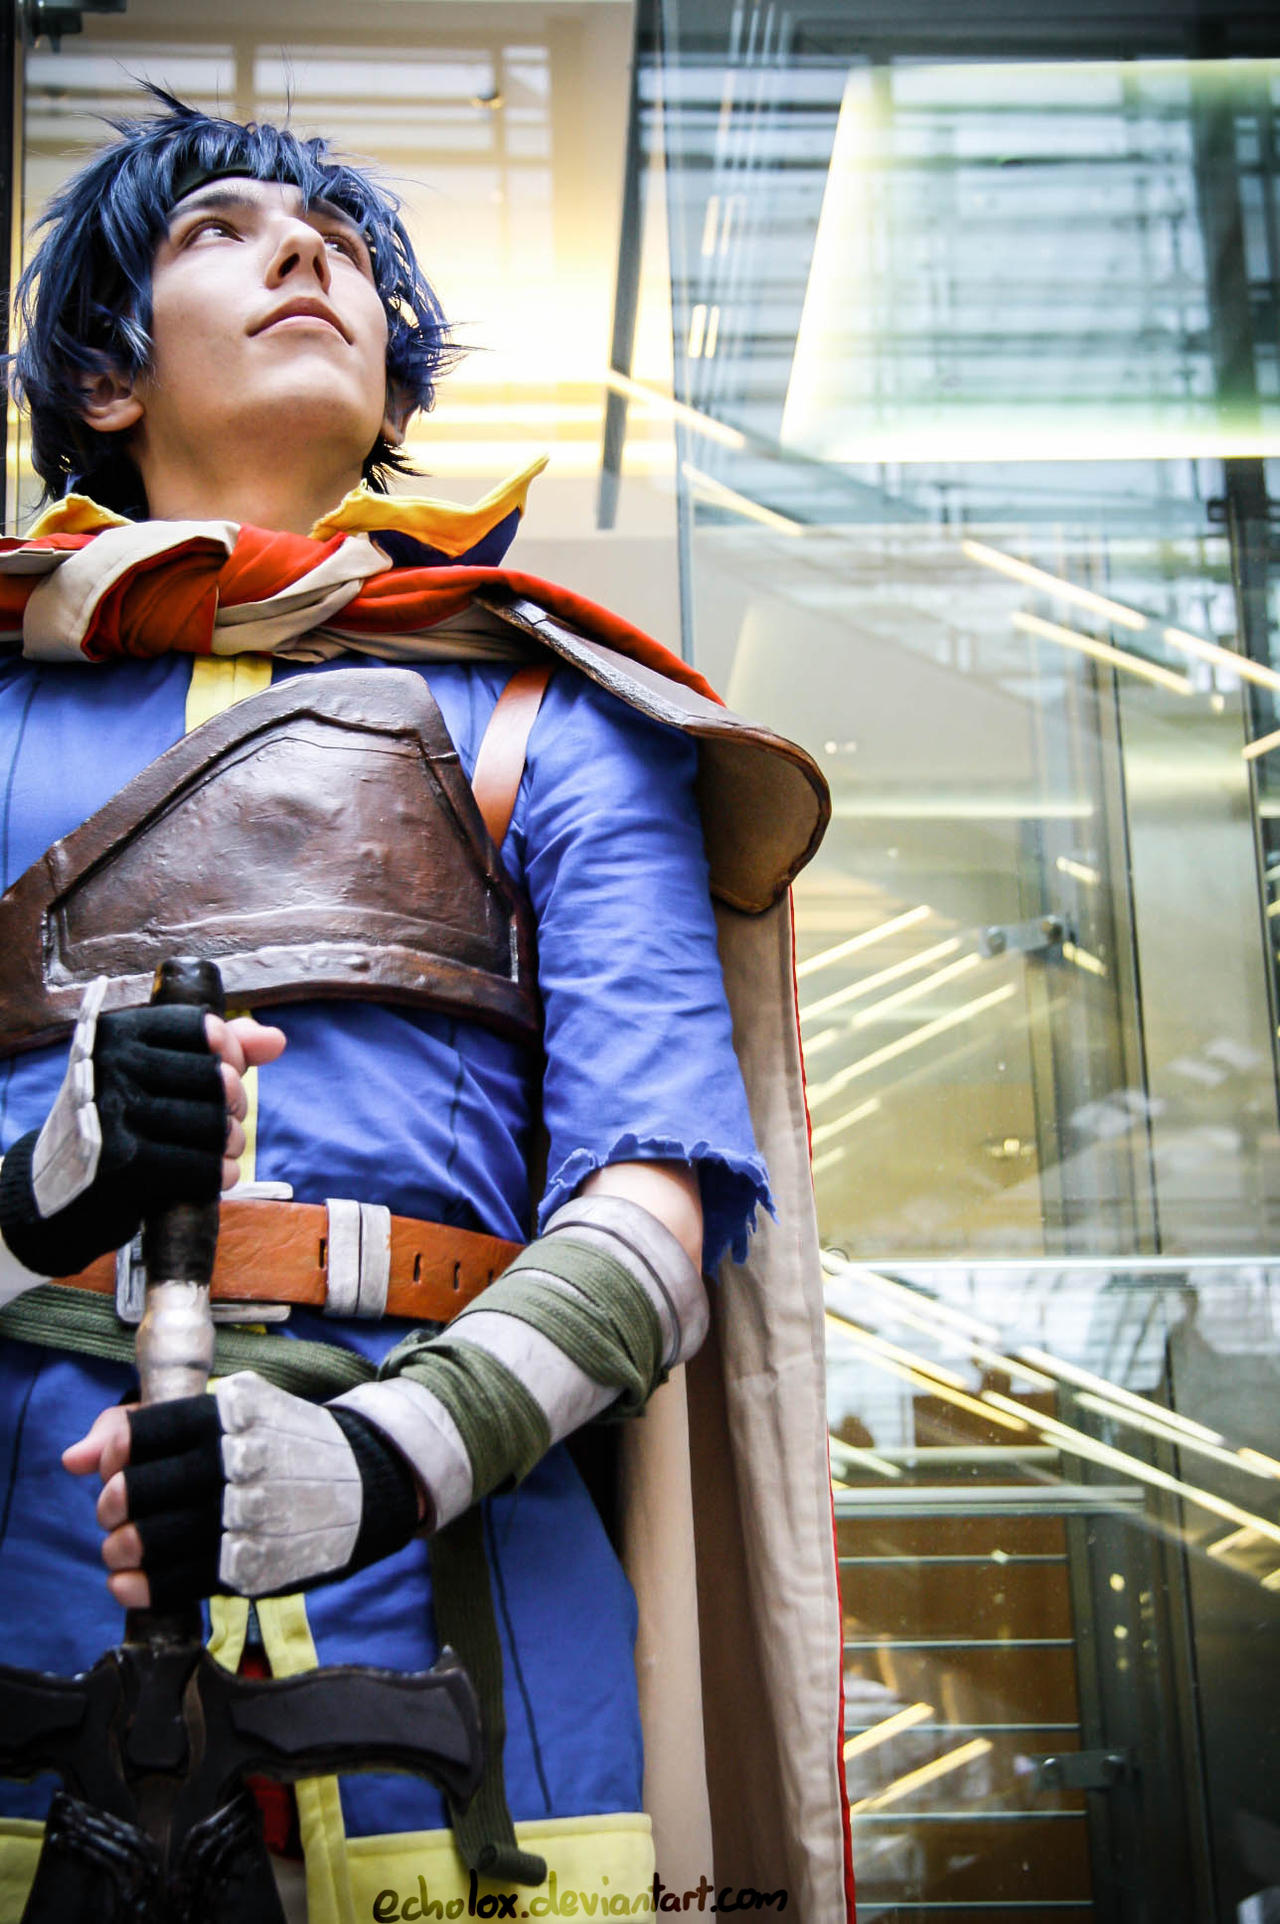 Ike (Fire Emblem) - Cosplay #5 by Echolox